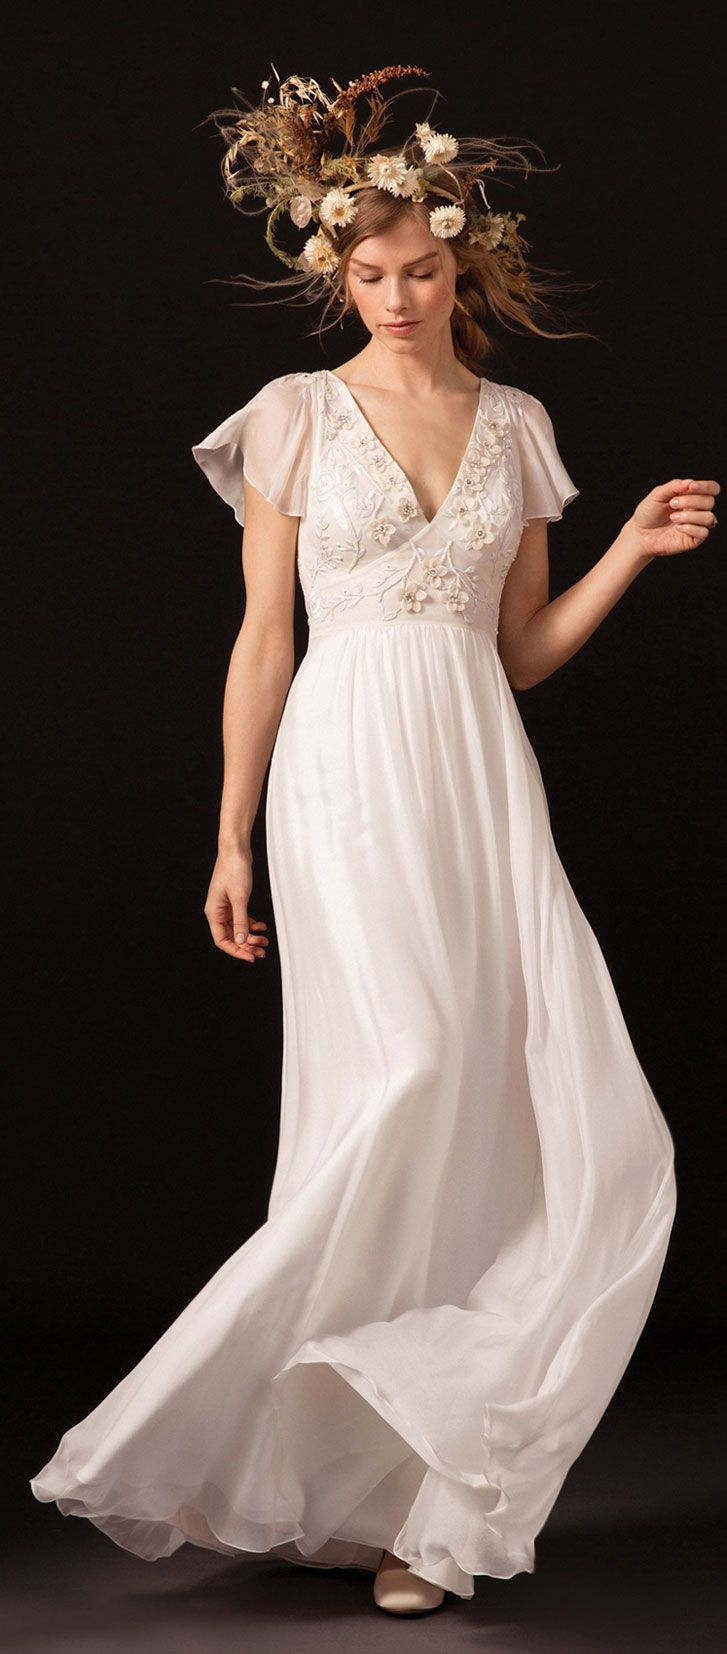 Flared bohemian sleeves v neckline with dotty tulle godets a line wedding #weddingdress #wedding #weddinggown